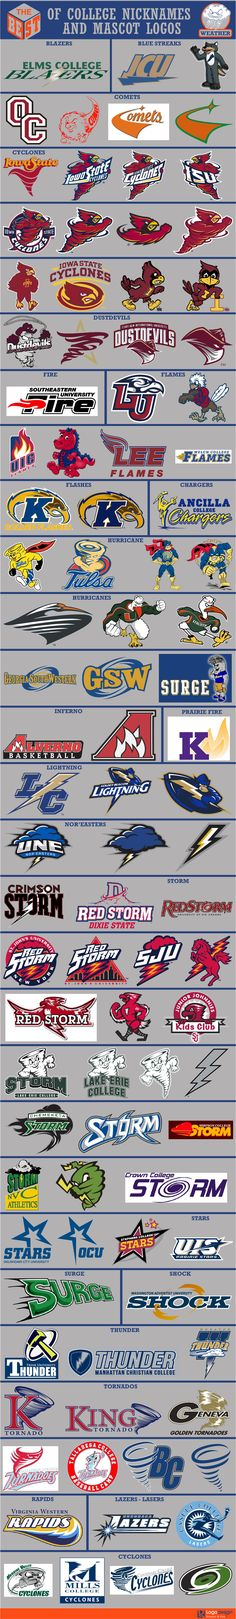 The Best of College Nicknames and Mascots logos College Football Logos, Sports Team Logos, College Sport, Sports Decals, Sports Art, Team Mascots, Major League Soccer, Great Logos, Logo Sign